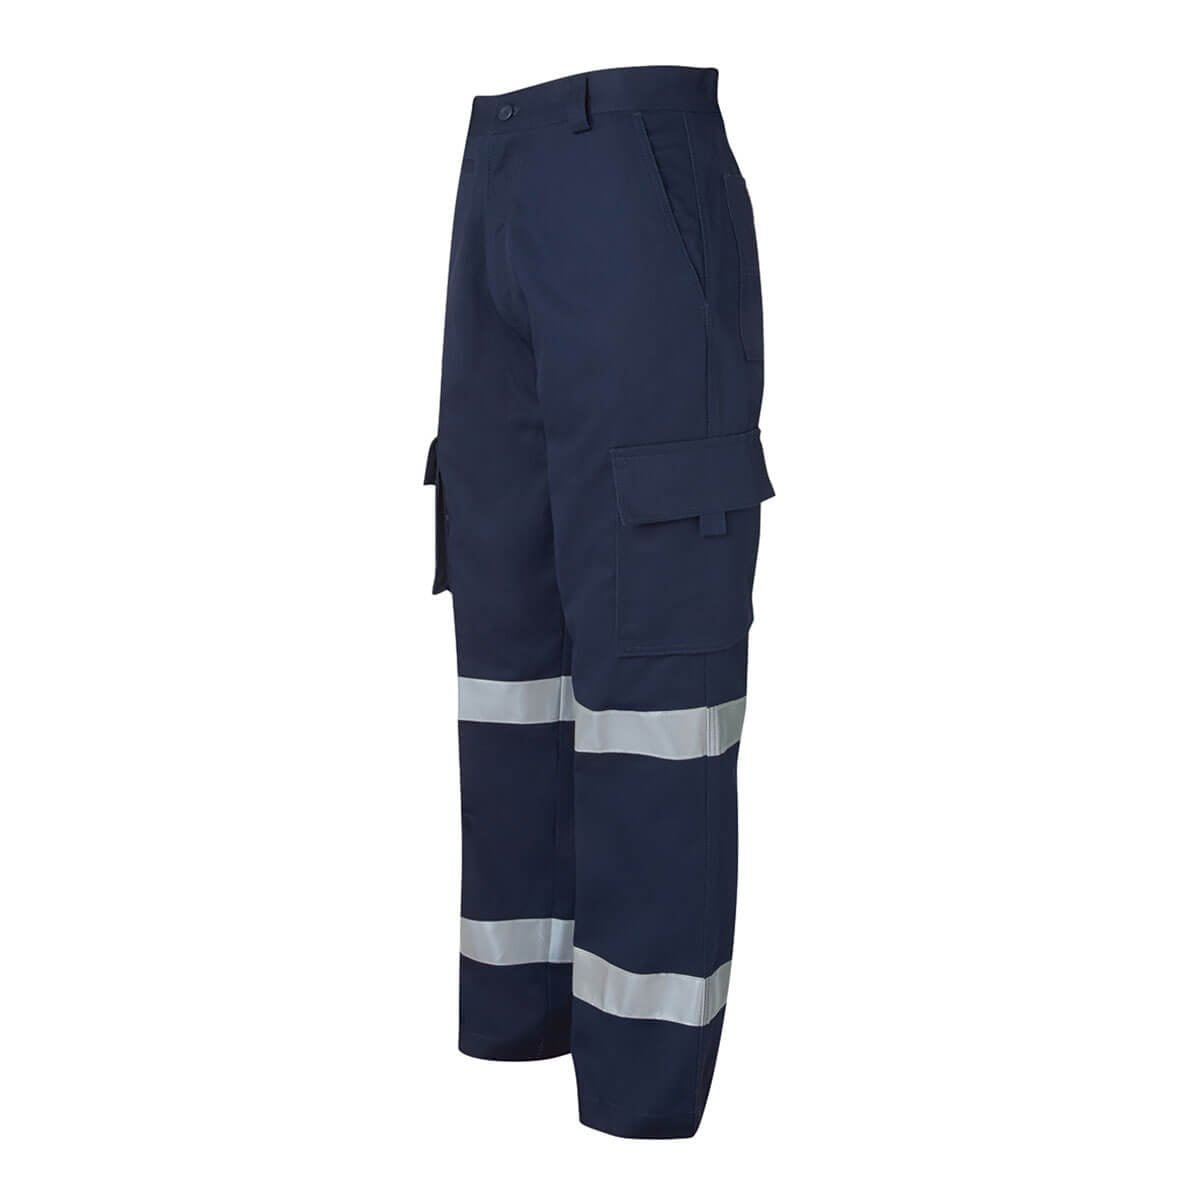 BIOMOTION PANTS WITH 3M